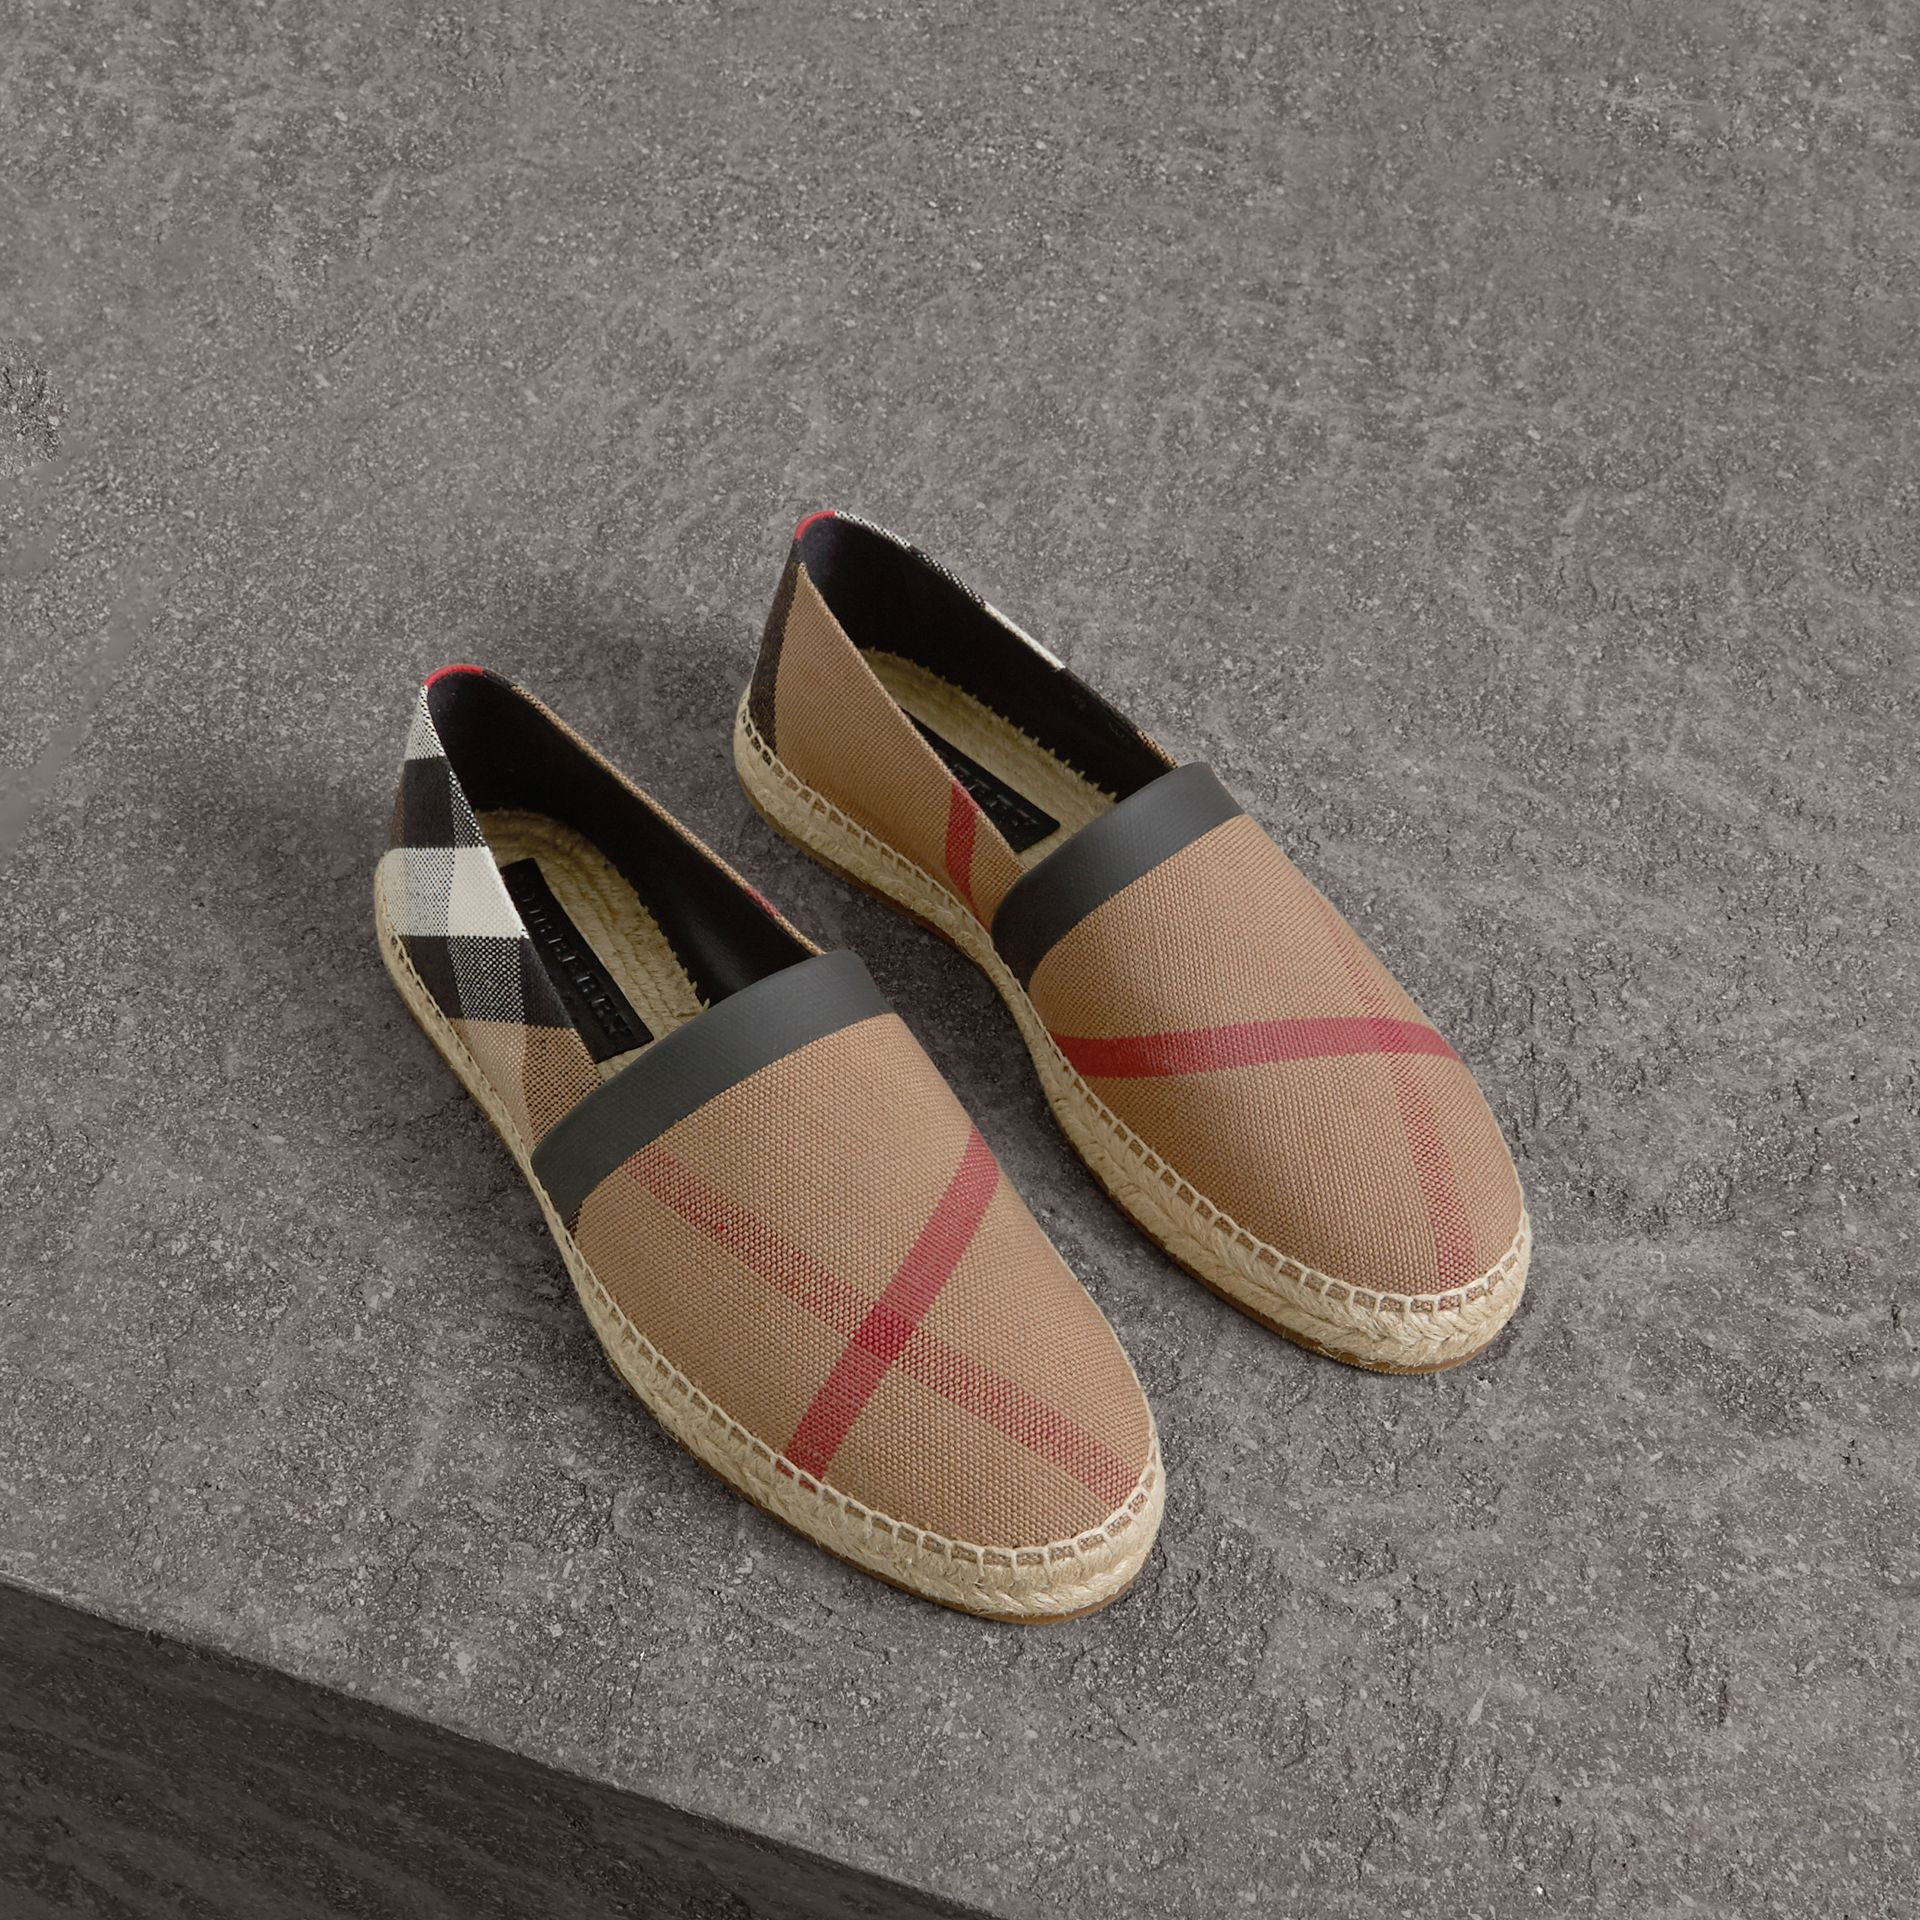 Check Cotton Canvas Seam-sealed Espadrilles in Classic - Men | Burberry - gallery image 0